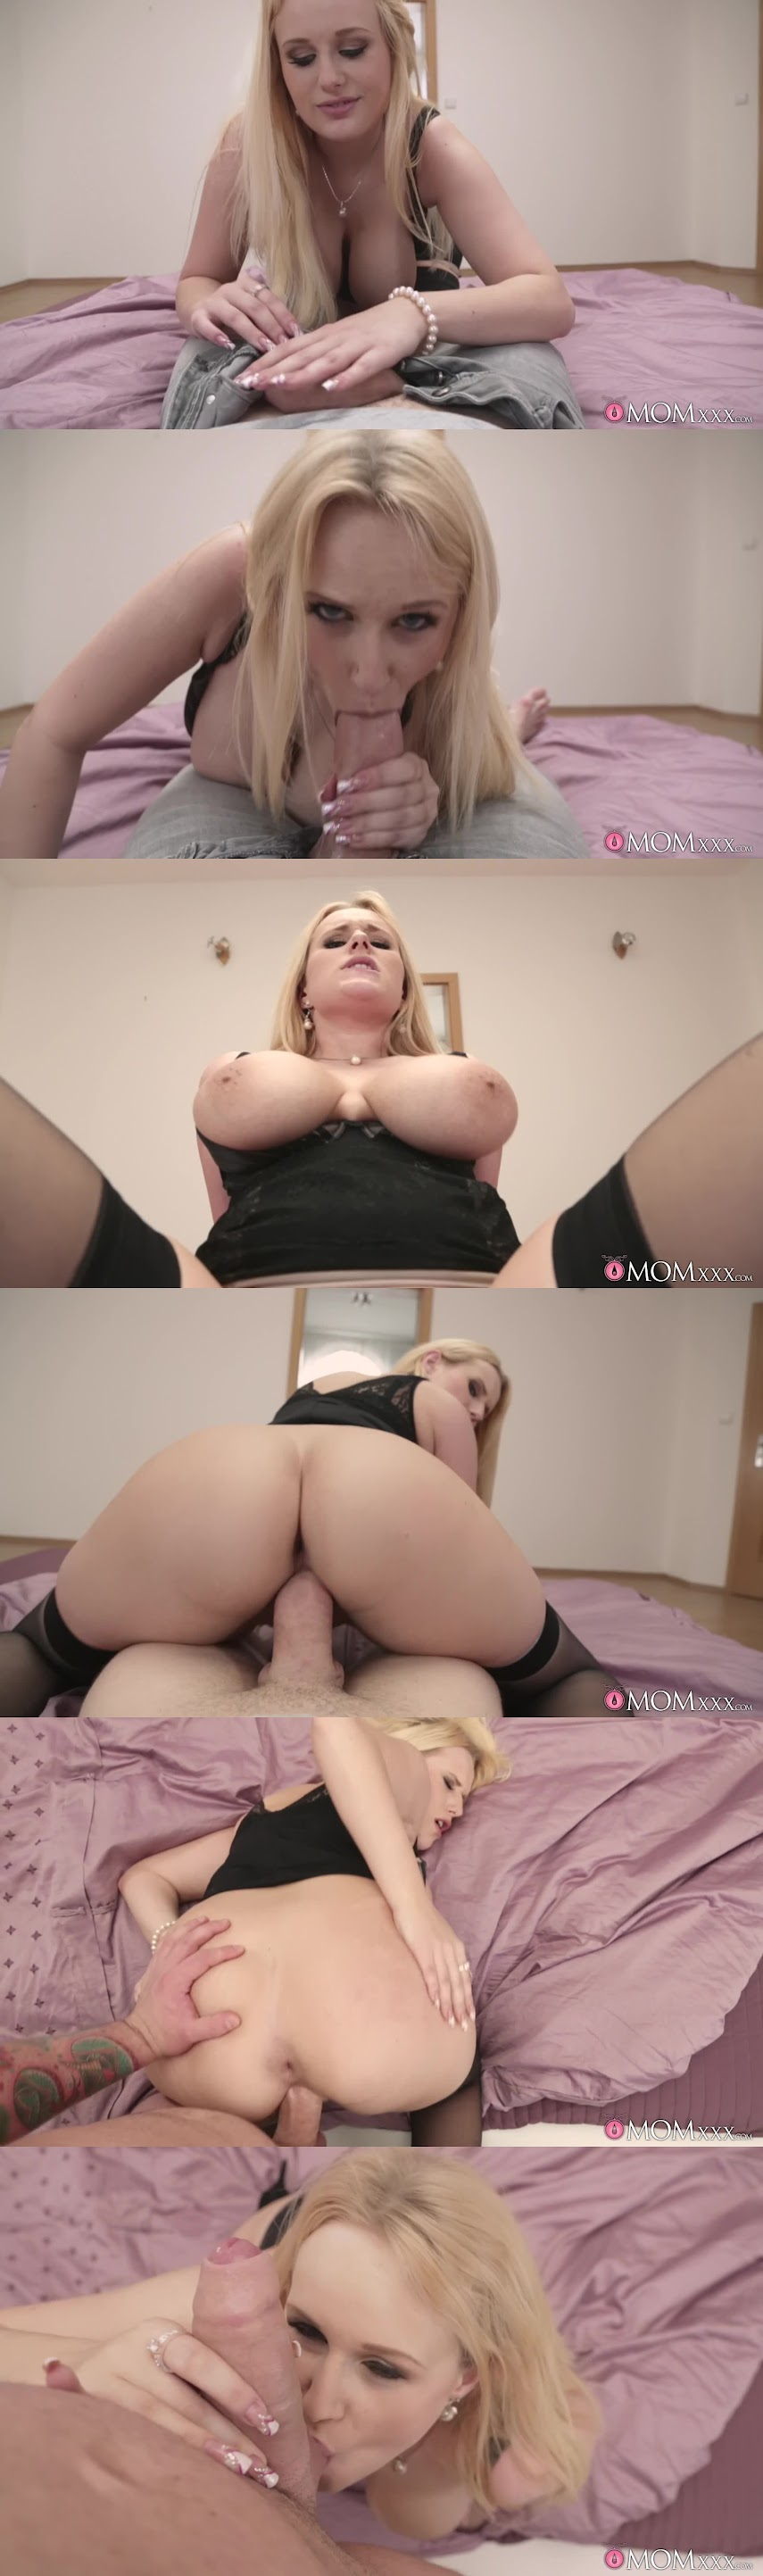 sexyhub.14.06.30.milf-pov-busty-blonde-takes-a-dickReal Street Angels